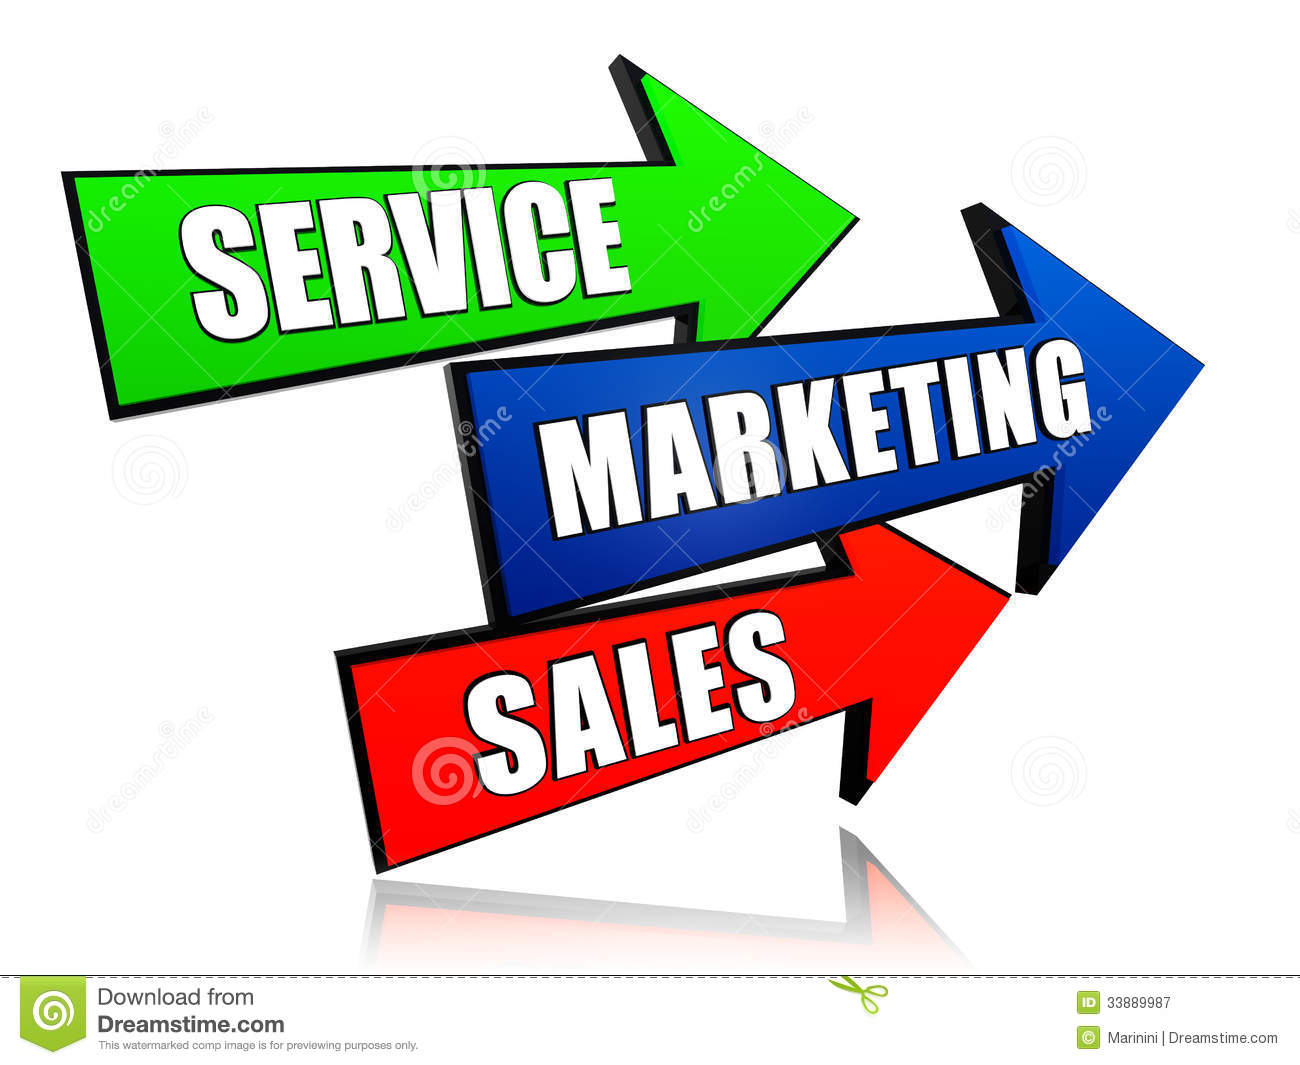 marketing and service The microsoft partner network is making it easy for you to find professional, personalized marketing resources that will help you to market your business save time, save money, and get the tools and support you need to reach your customers.